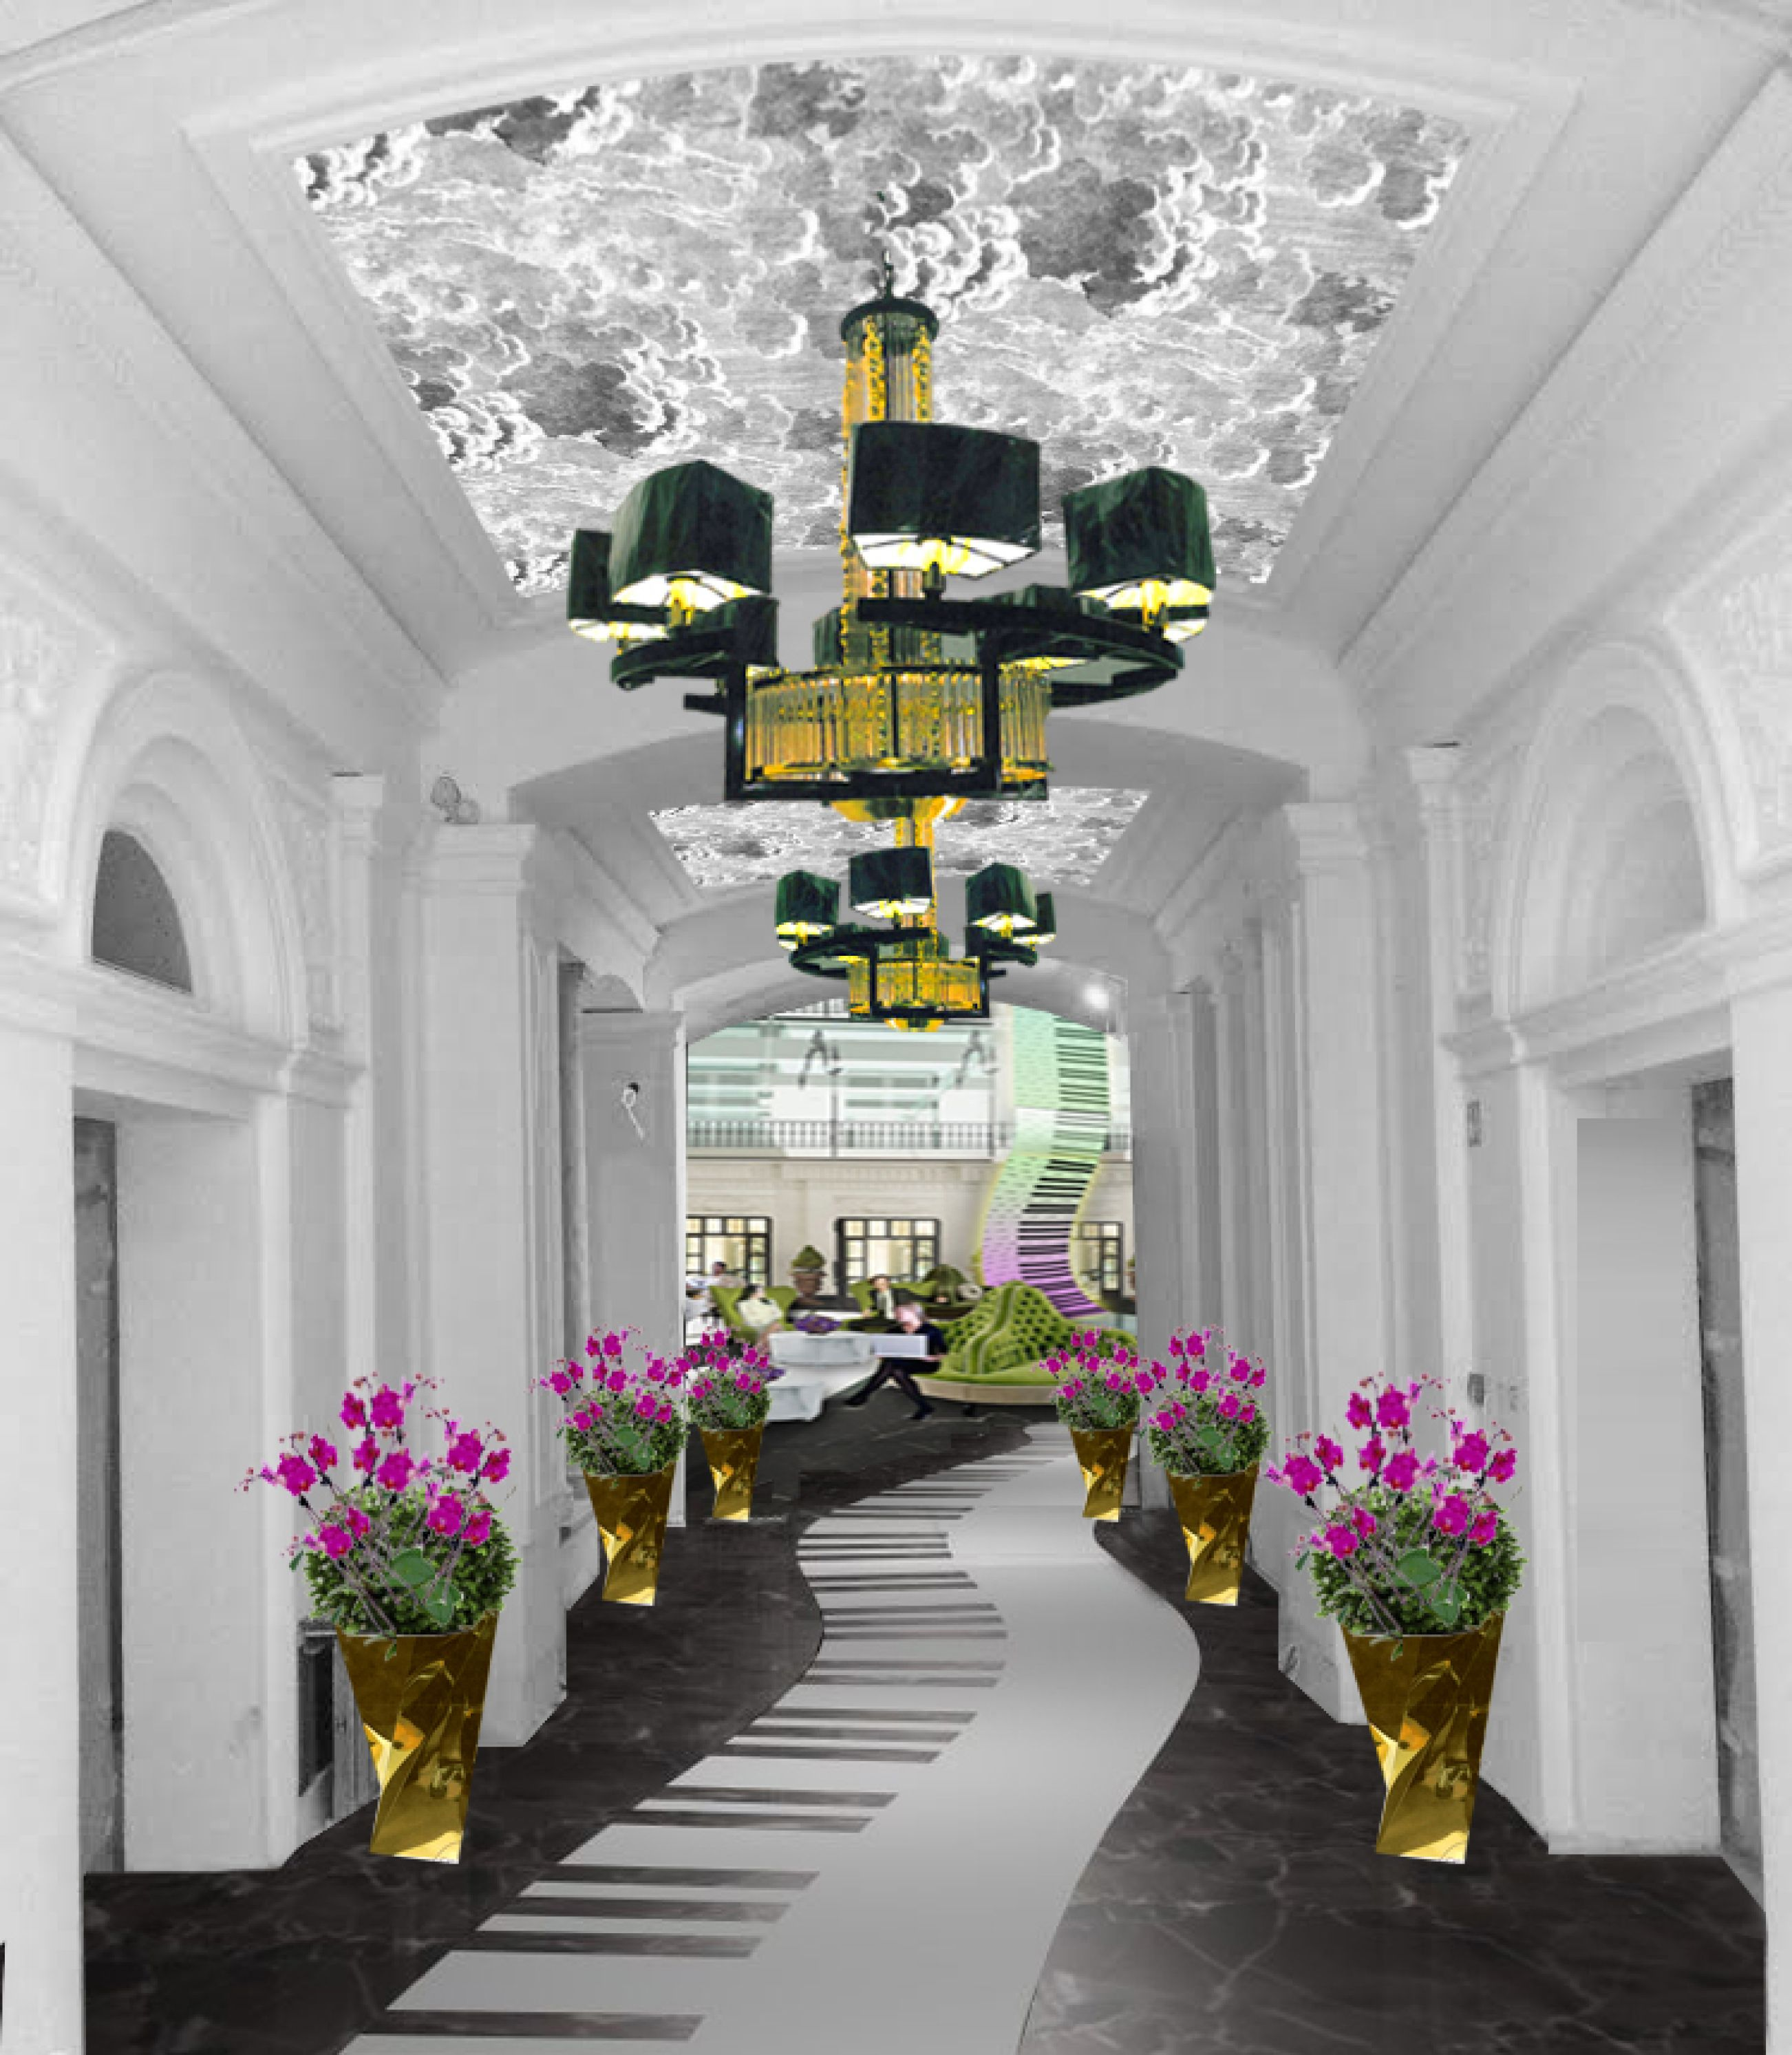 Hotel Entrance Foyer : Aria hotel budapest s grand entrance foyer concept rendering